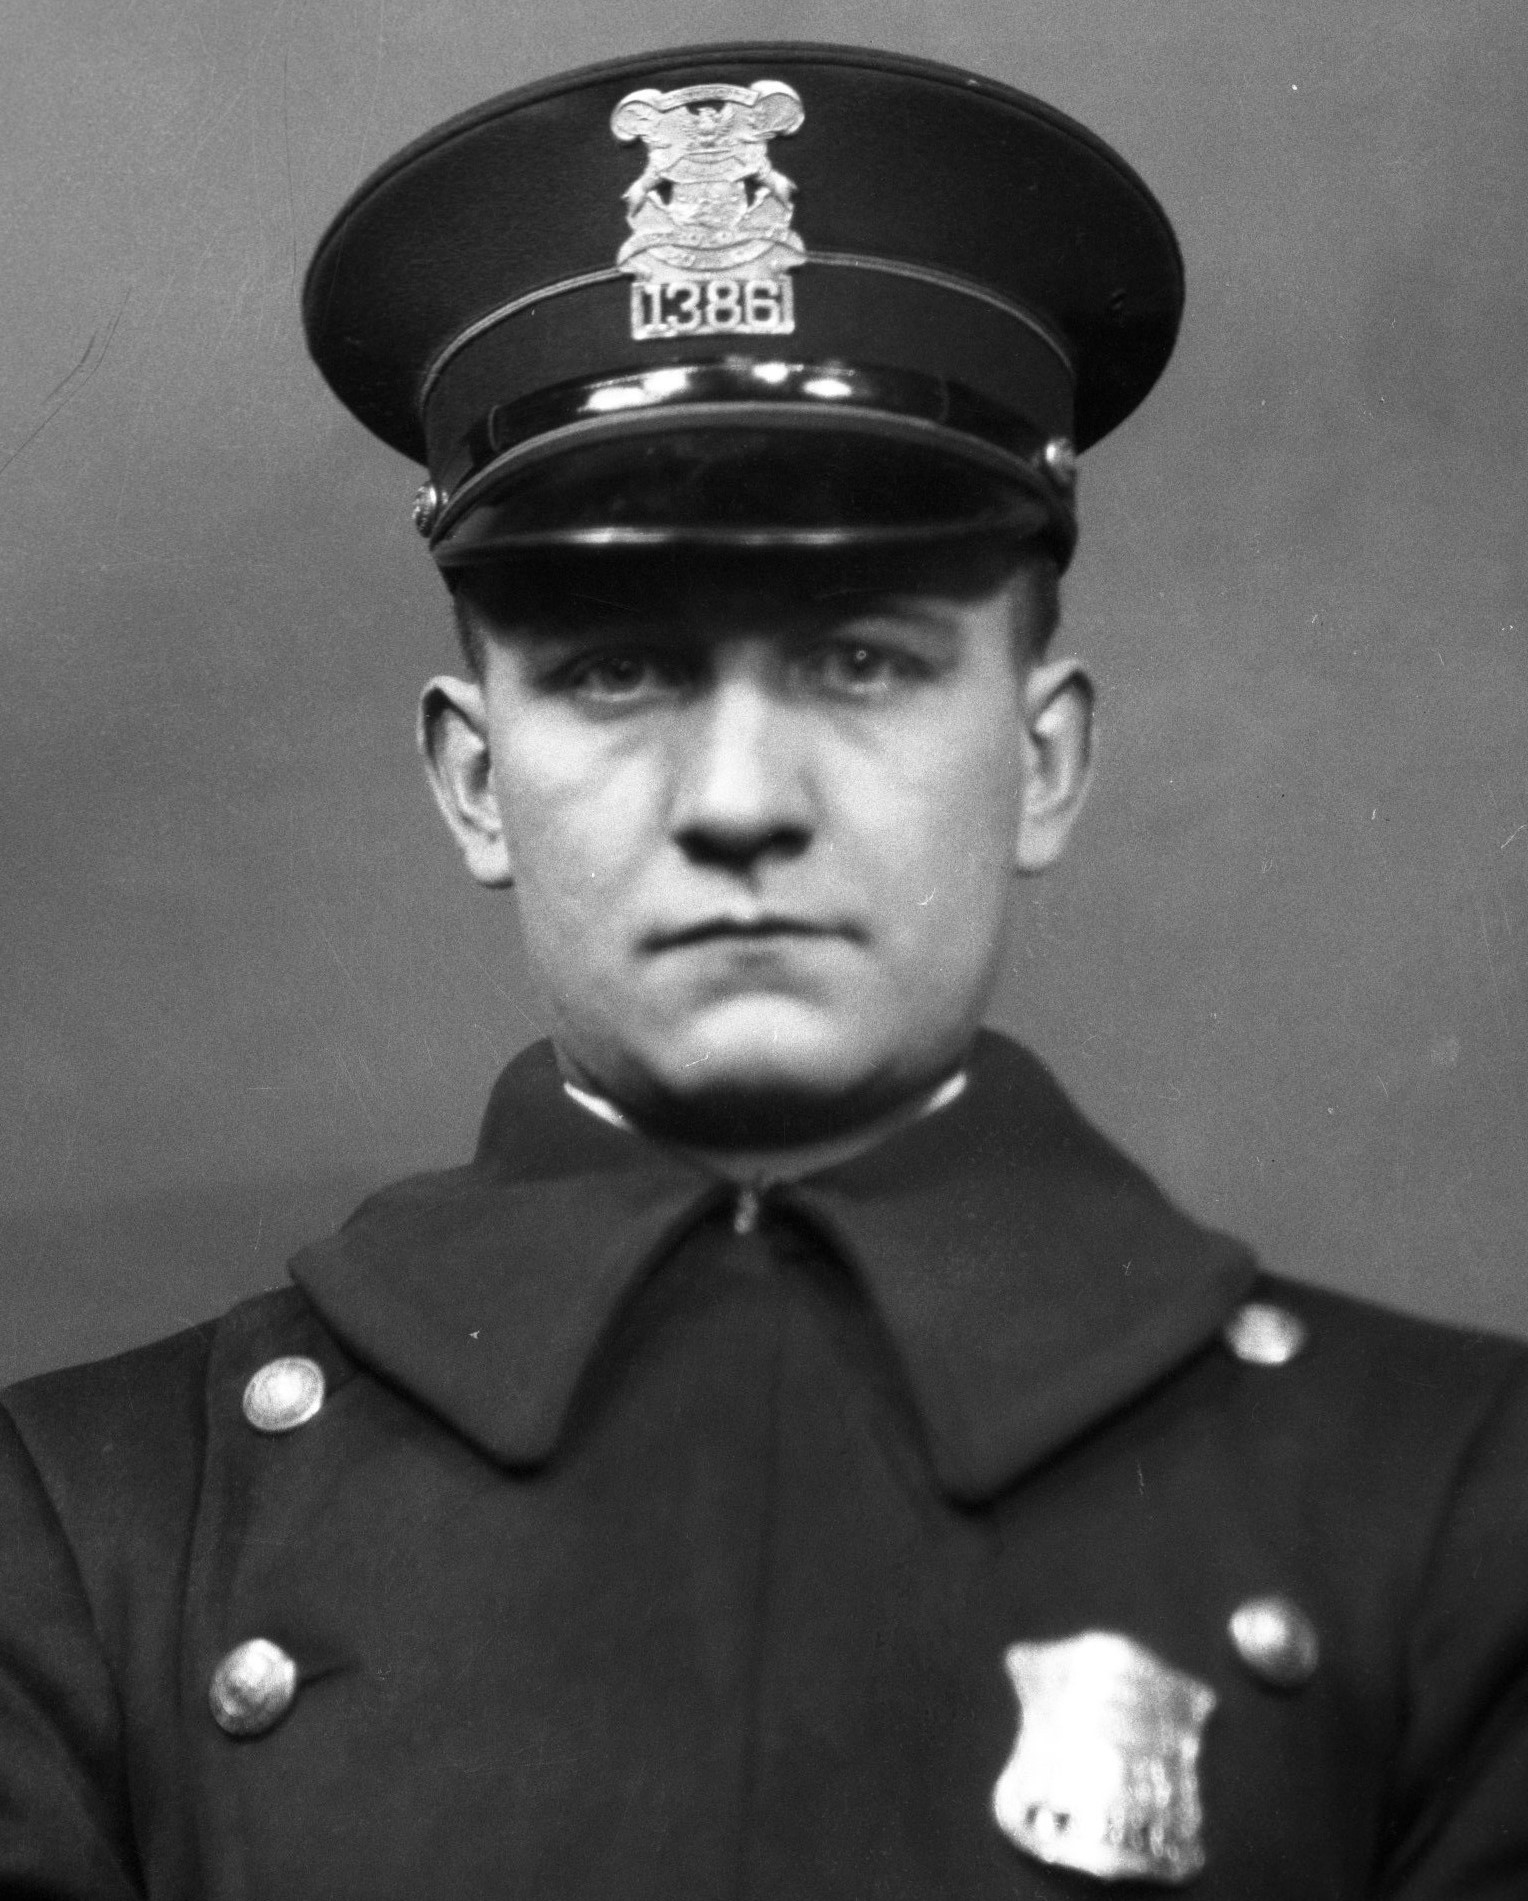 Police Officer Herbert J. Bischoff | Detroit Police Department, Michigan